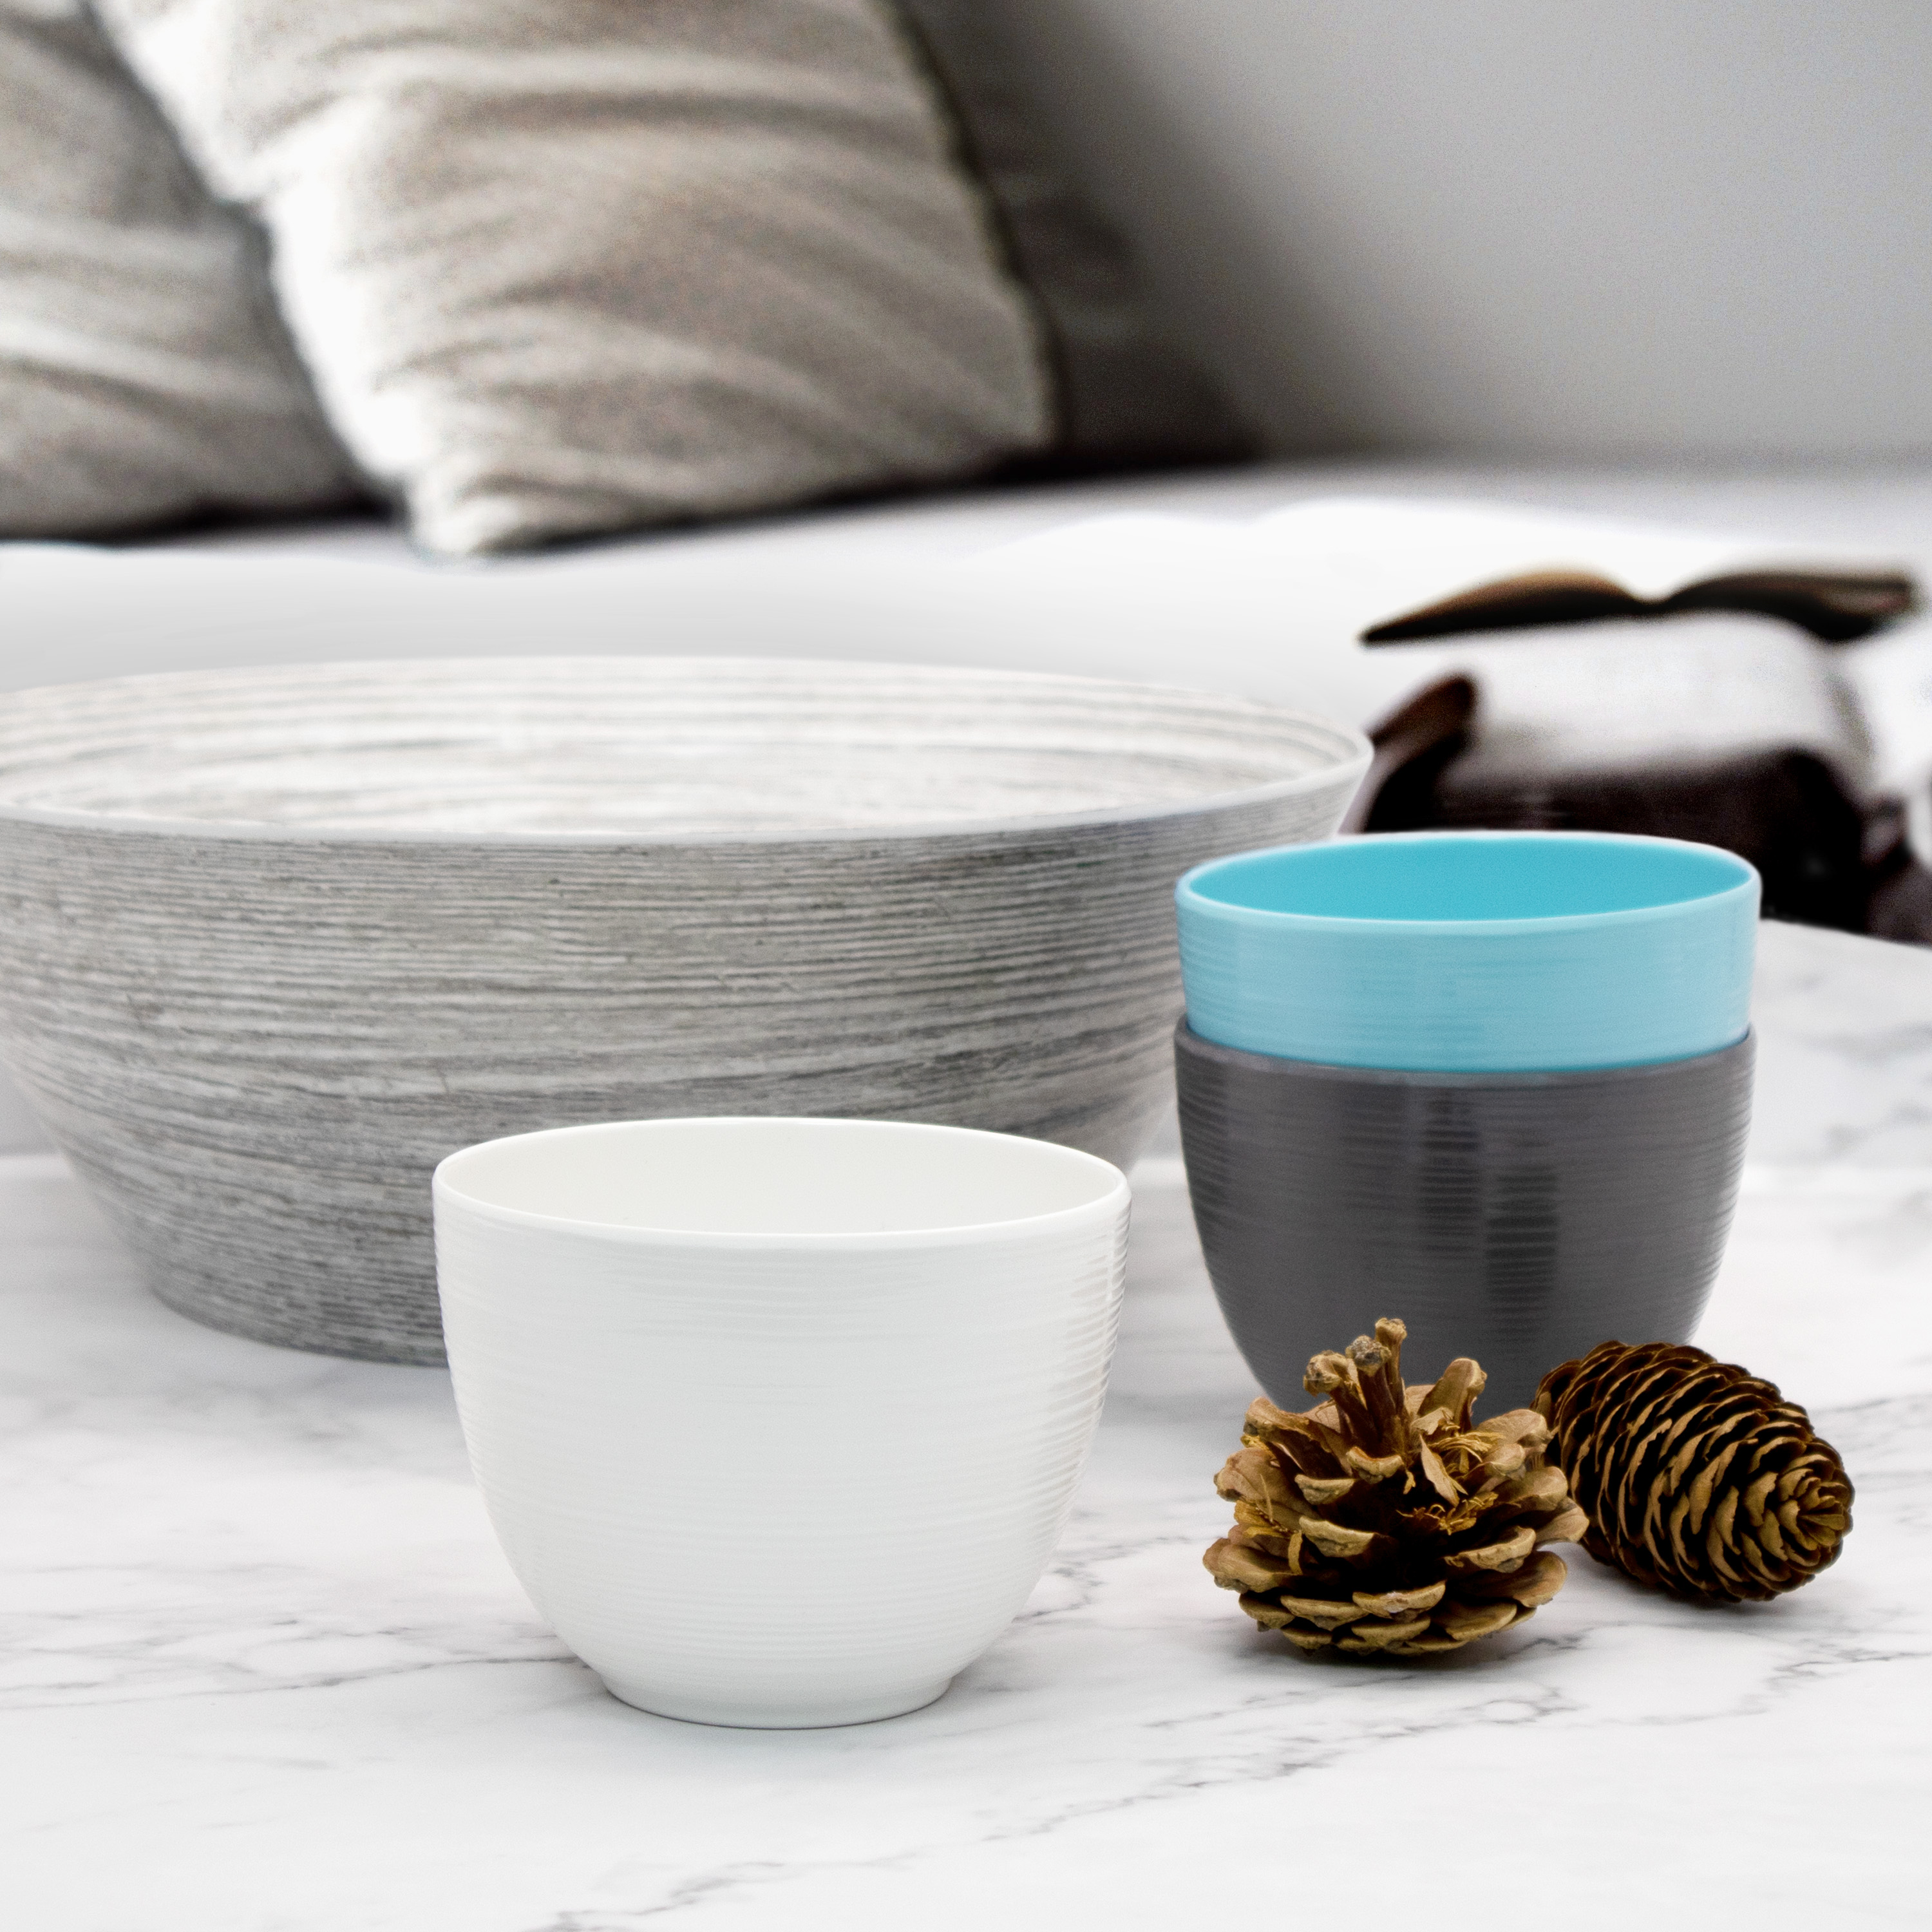 Zak Style Serving and Dip Bowls, Assorted Colors, 4-piece set slideshow image 5